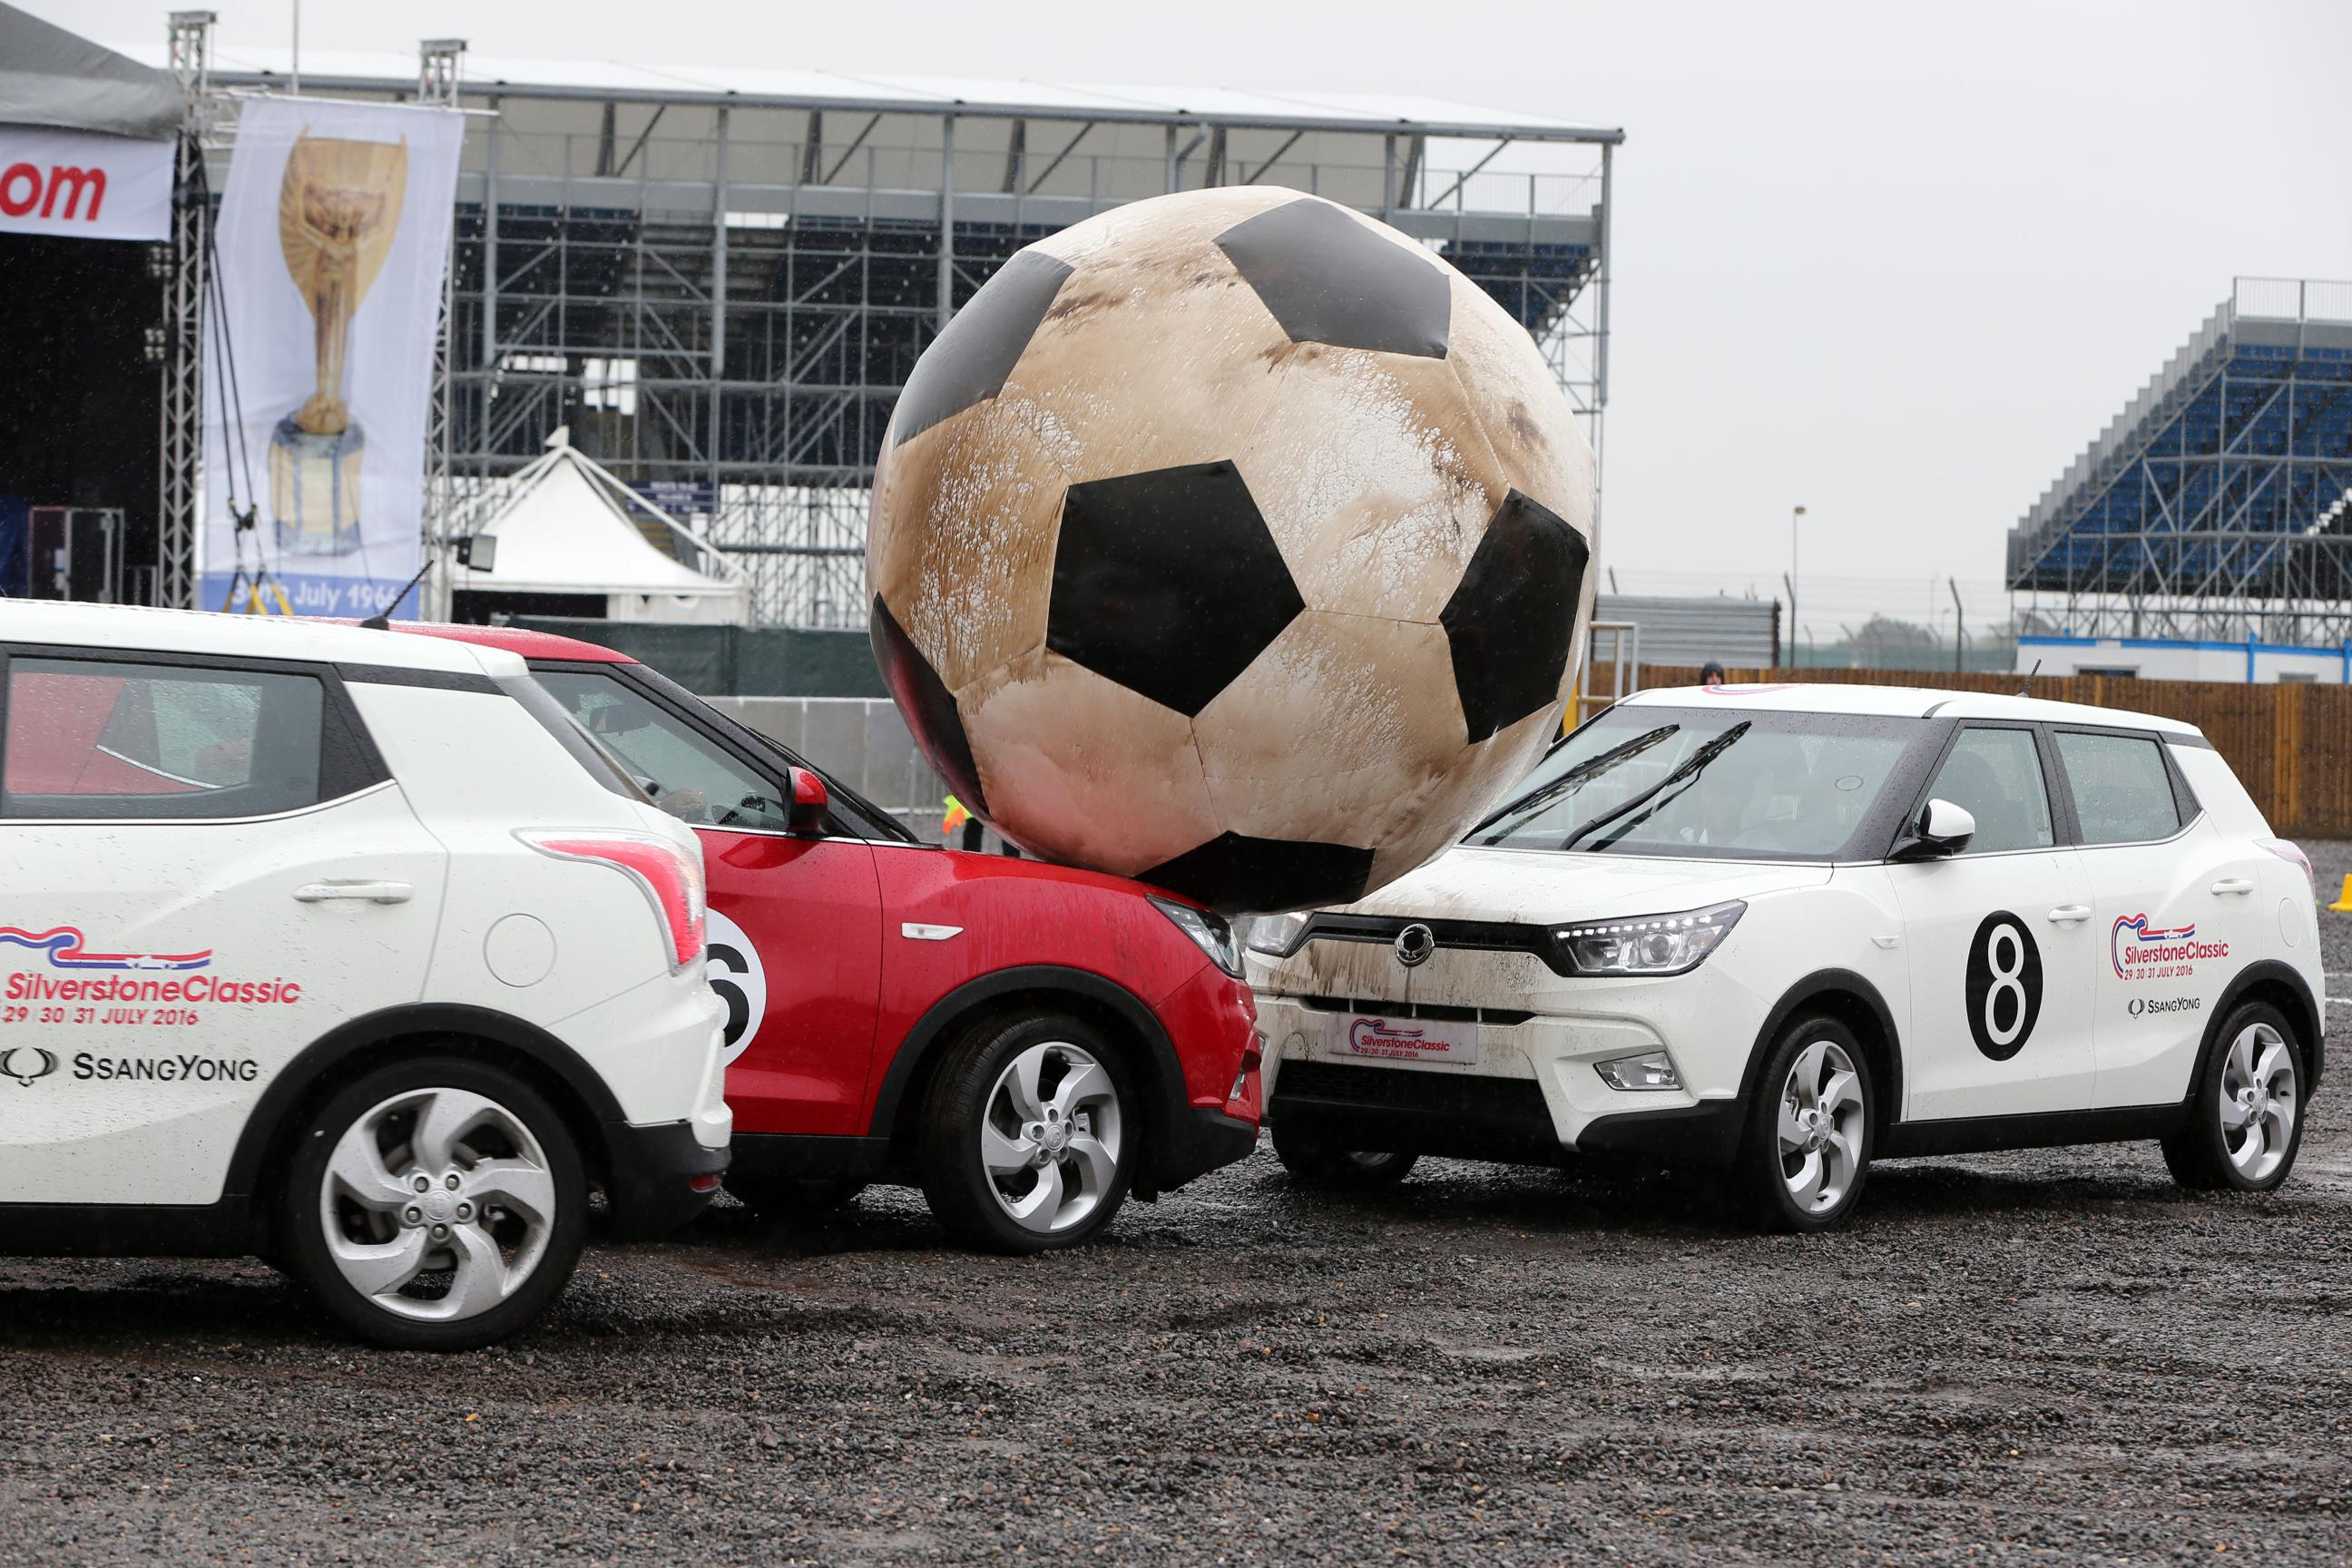 Silverstone commemorated he 50th anniversary of England's World Cup win with a game of car football